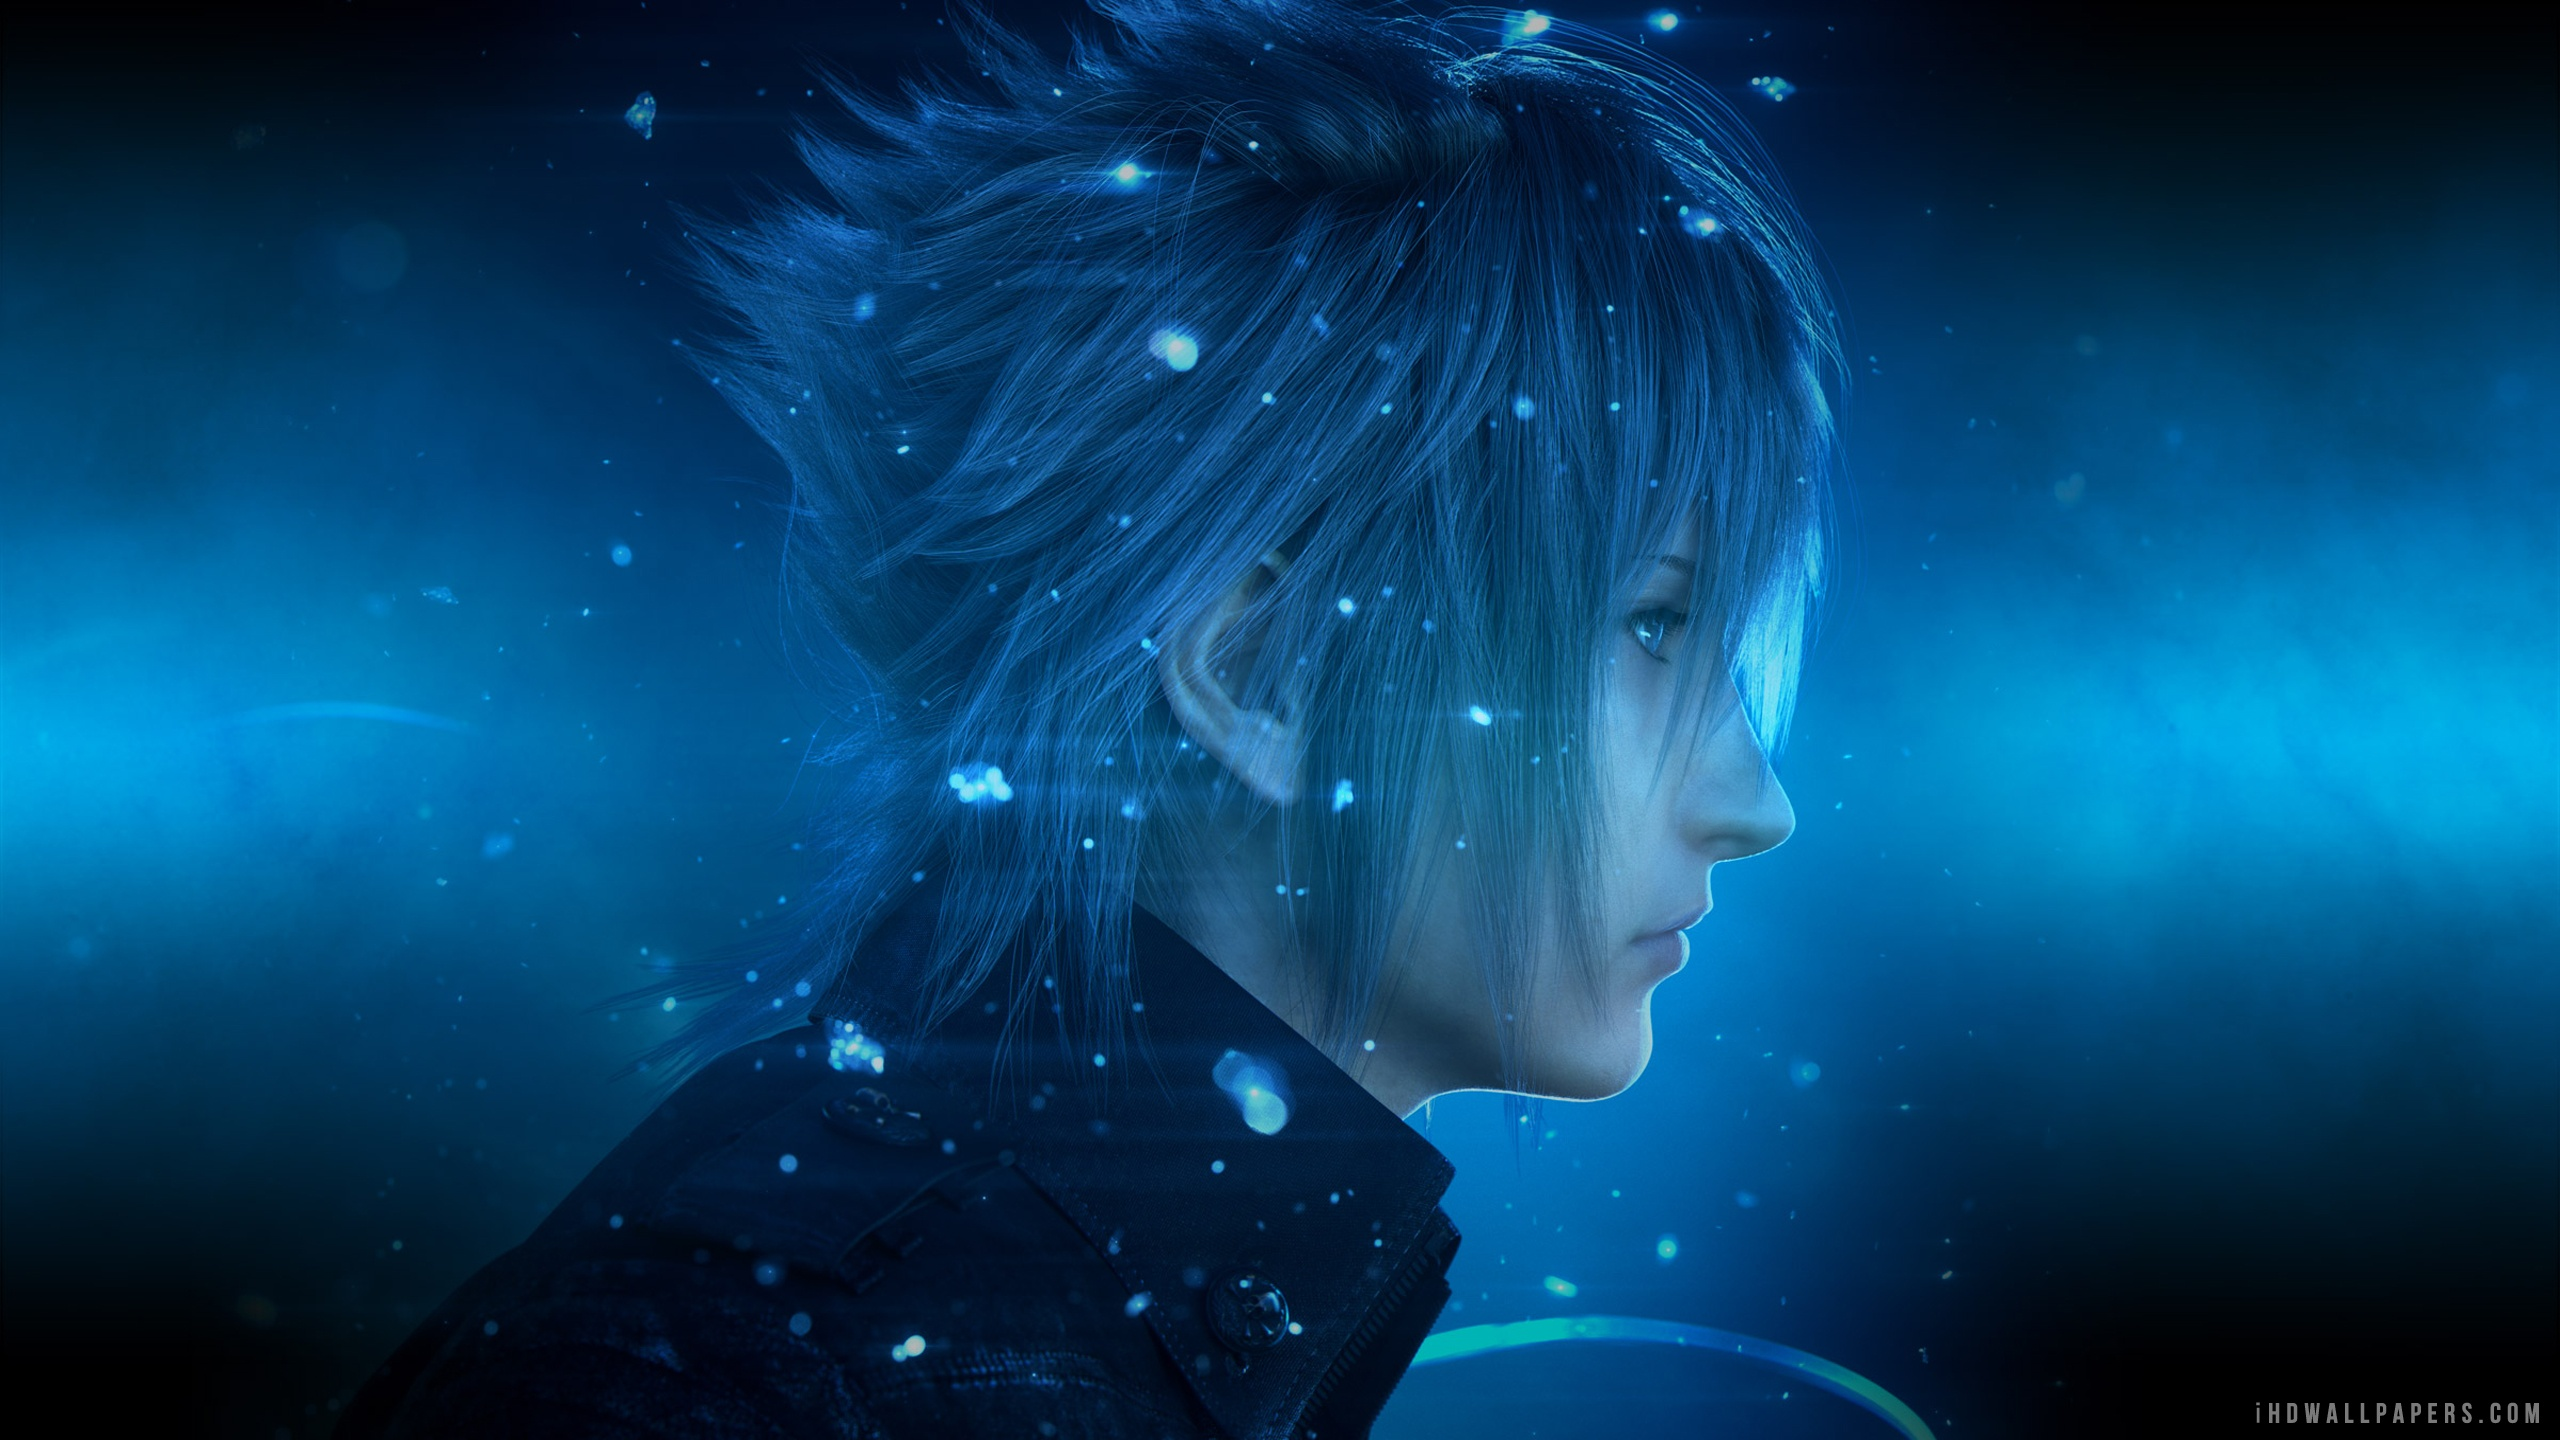 Final Fantasy Xv Wallpaper 78 Images: Final Fantasy XV HD Wallpapers Free Download